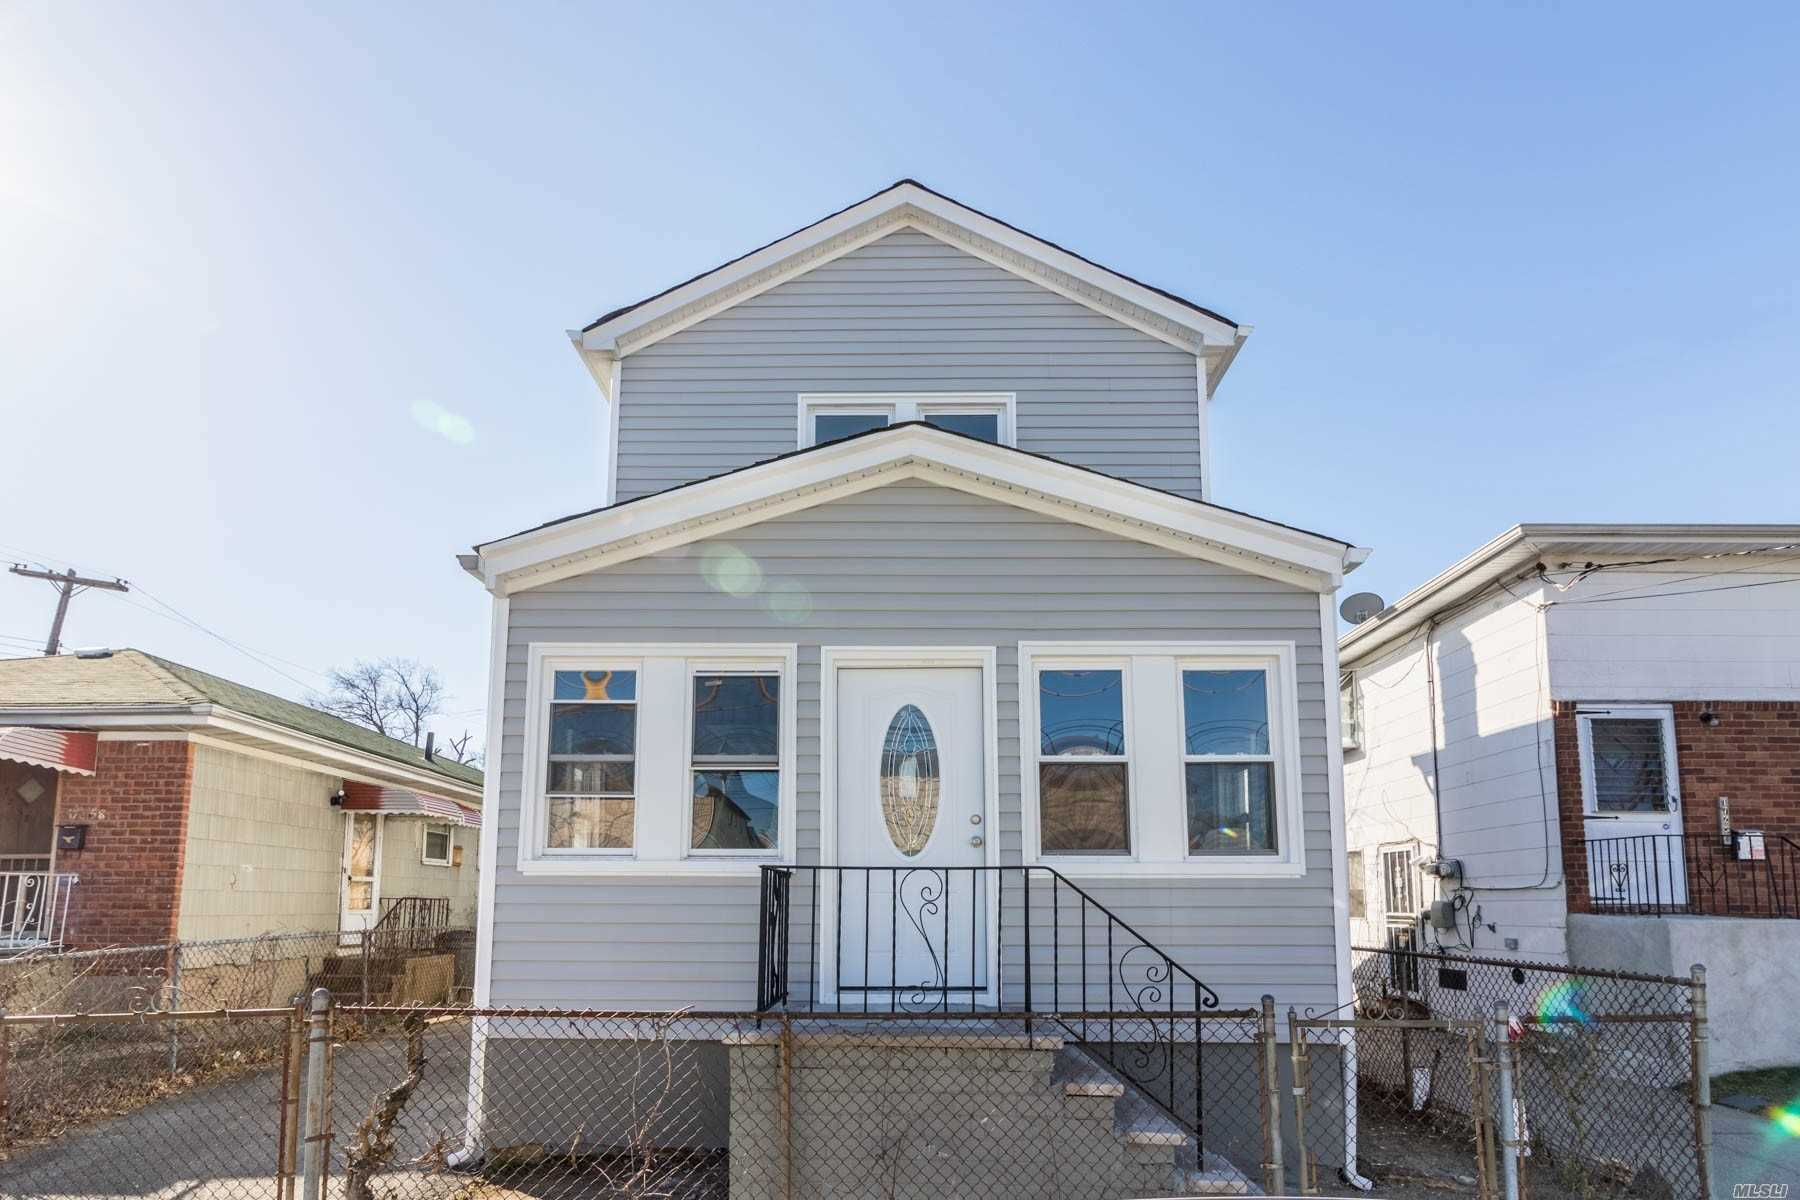 172-54 126th Ave Springfield Gdns, NY 11413